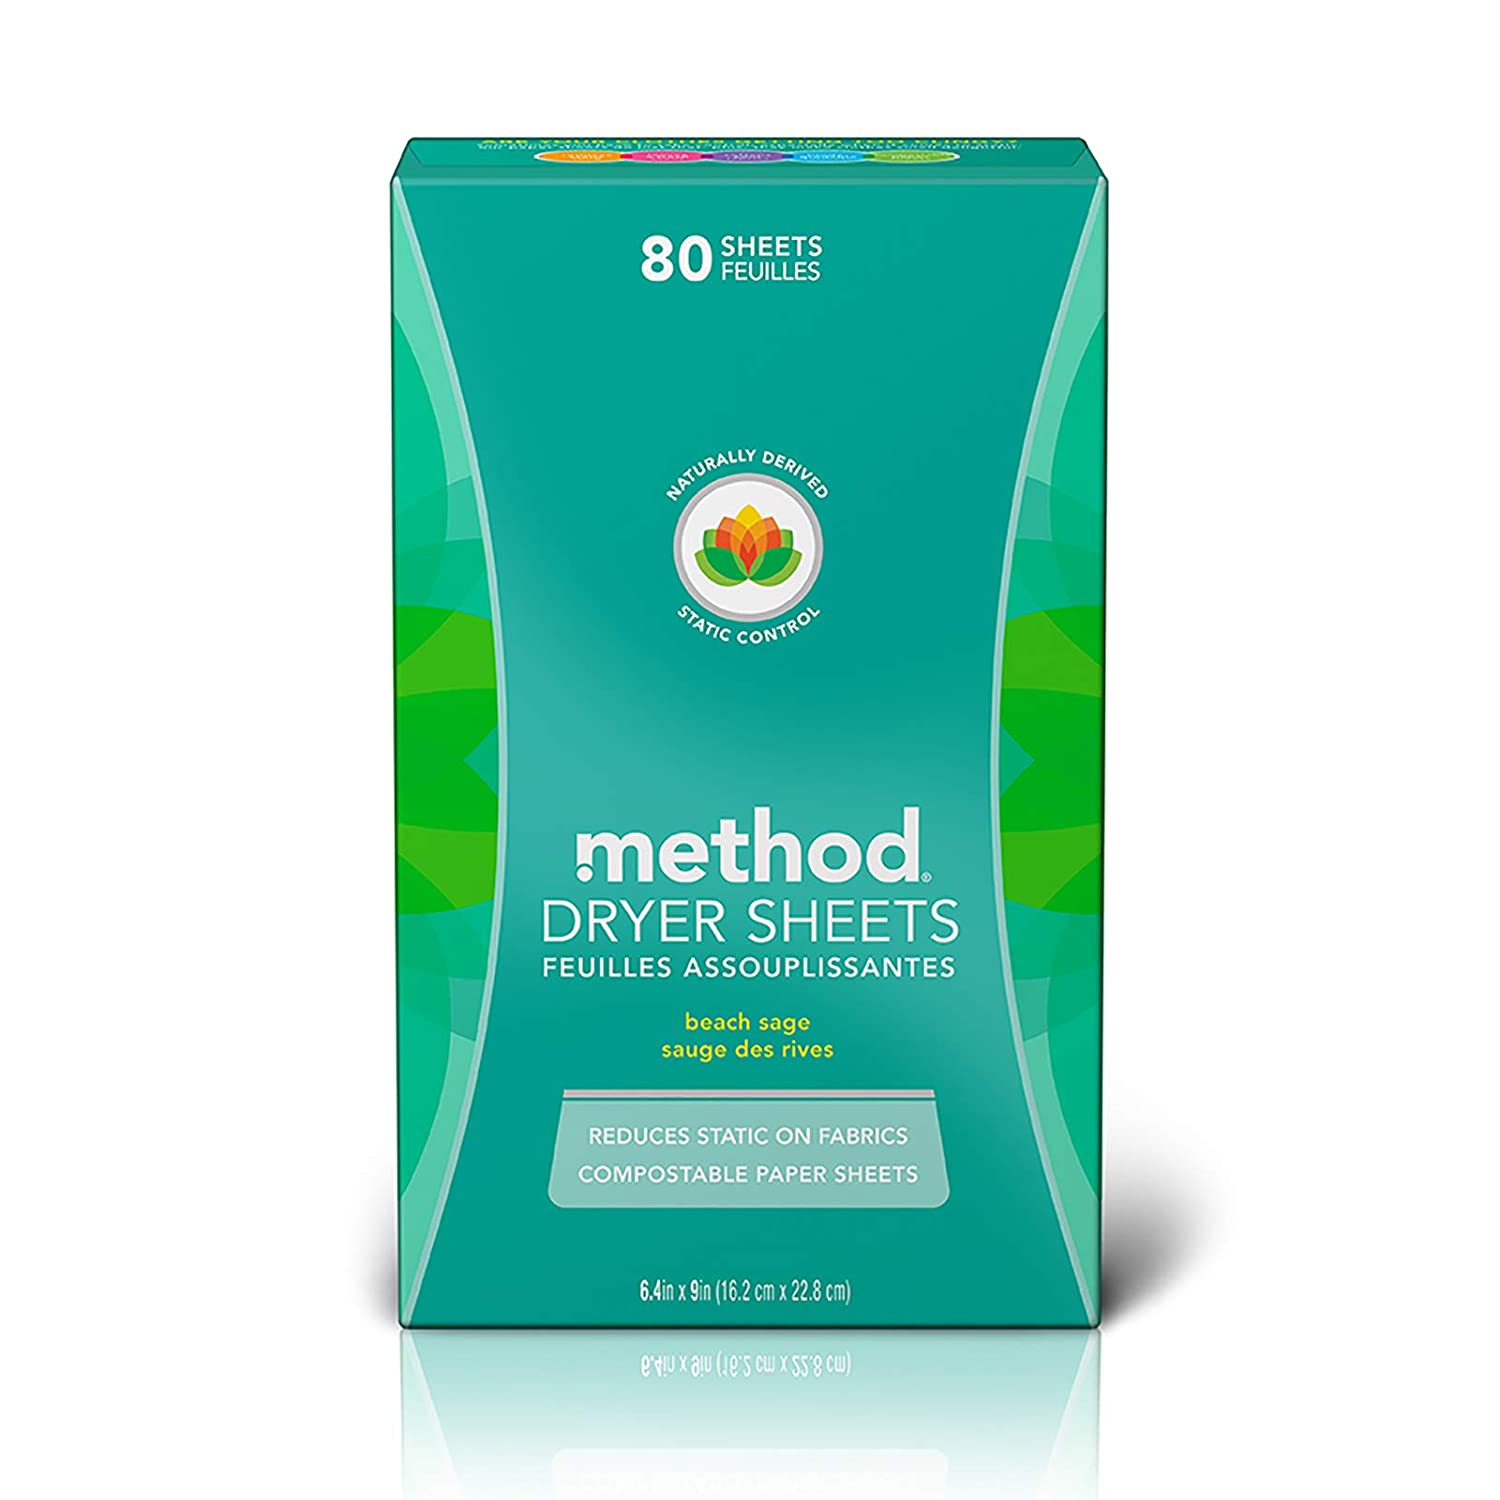 Method Dryer Sheets, Beach Sage, 80 Count